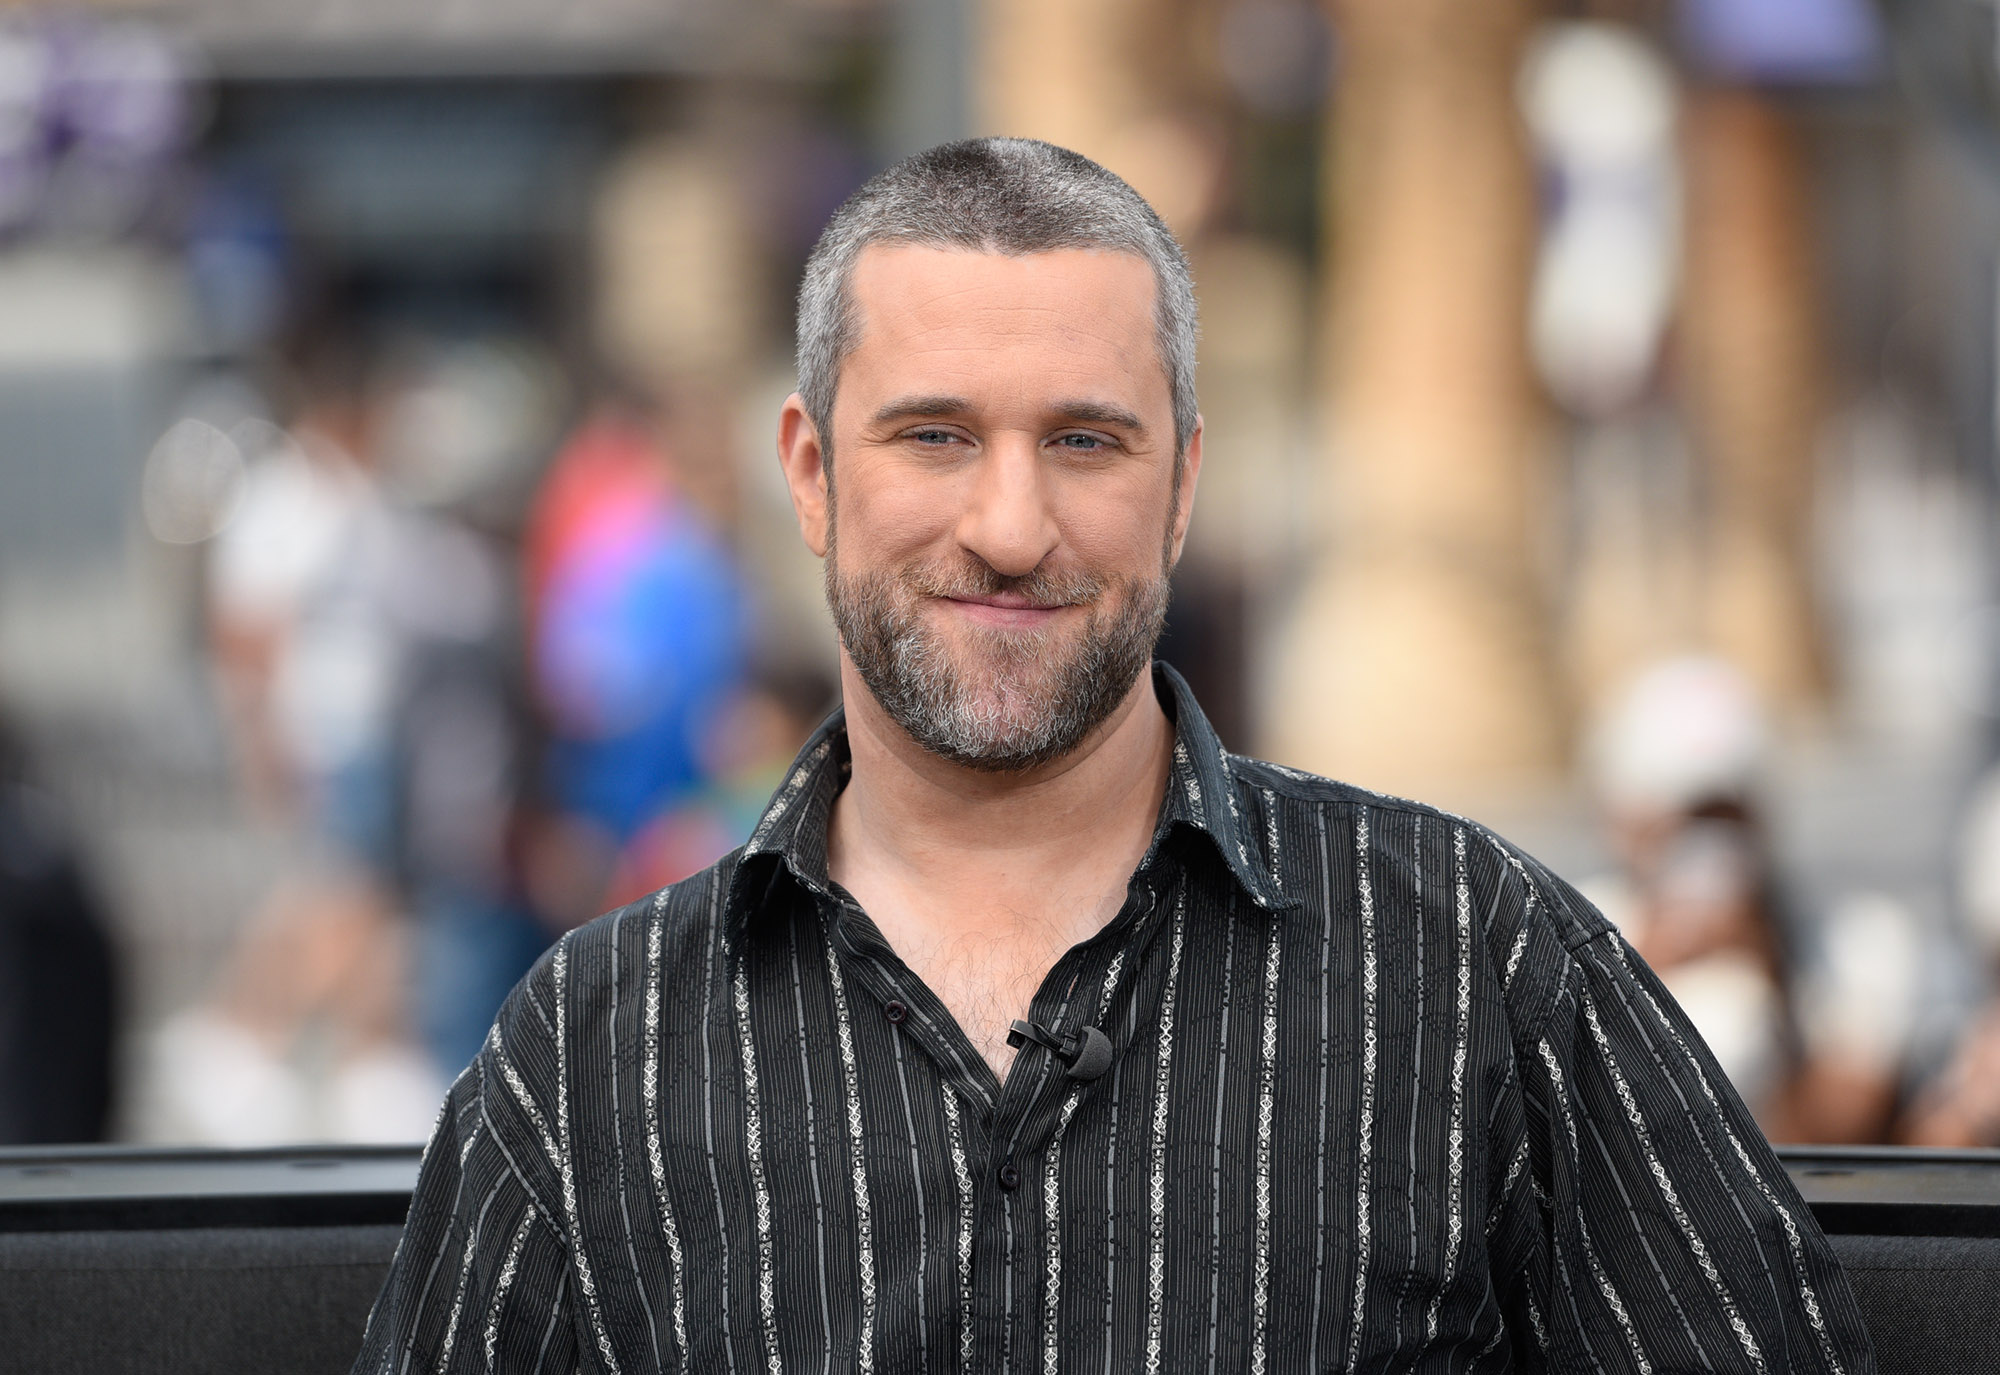 Dustin Diamond, 'Saved by the Bell' star, hospitalized with cancer